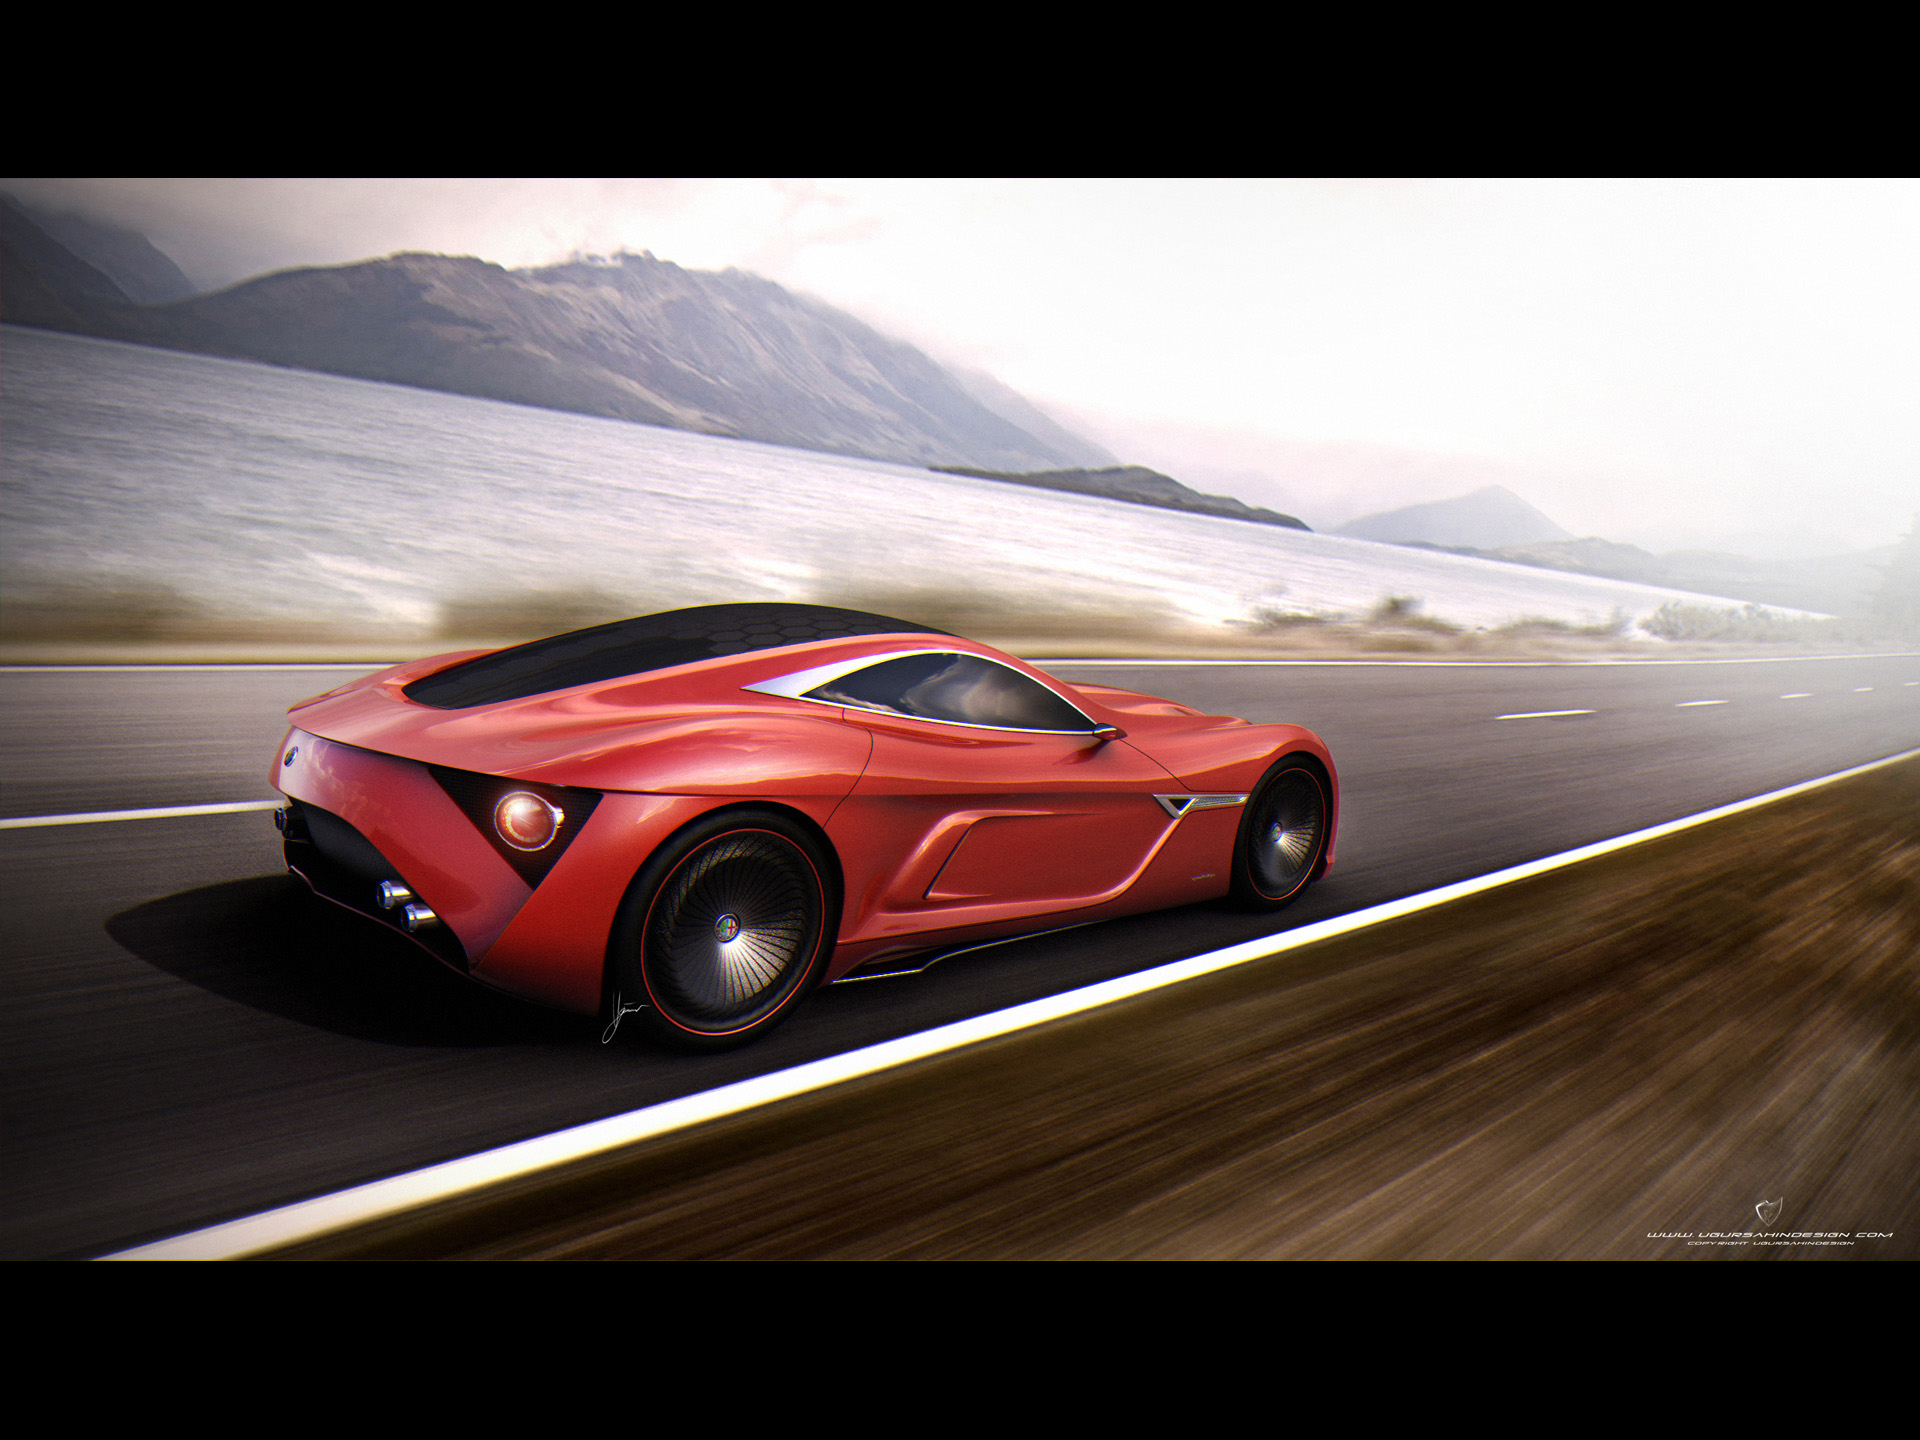 1920x1440 - Alfa Romeo 12C GTS Wallpapers 30